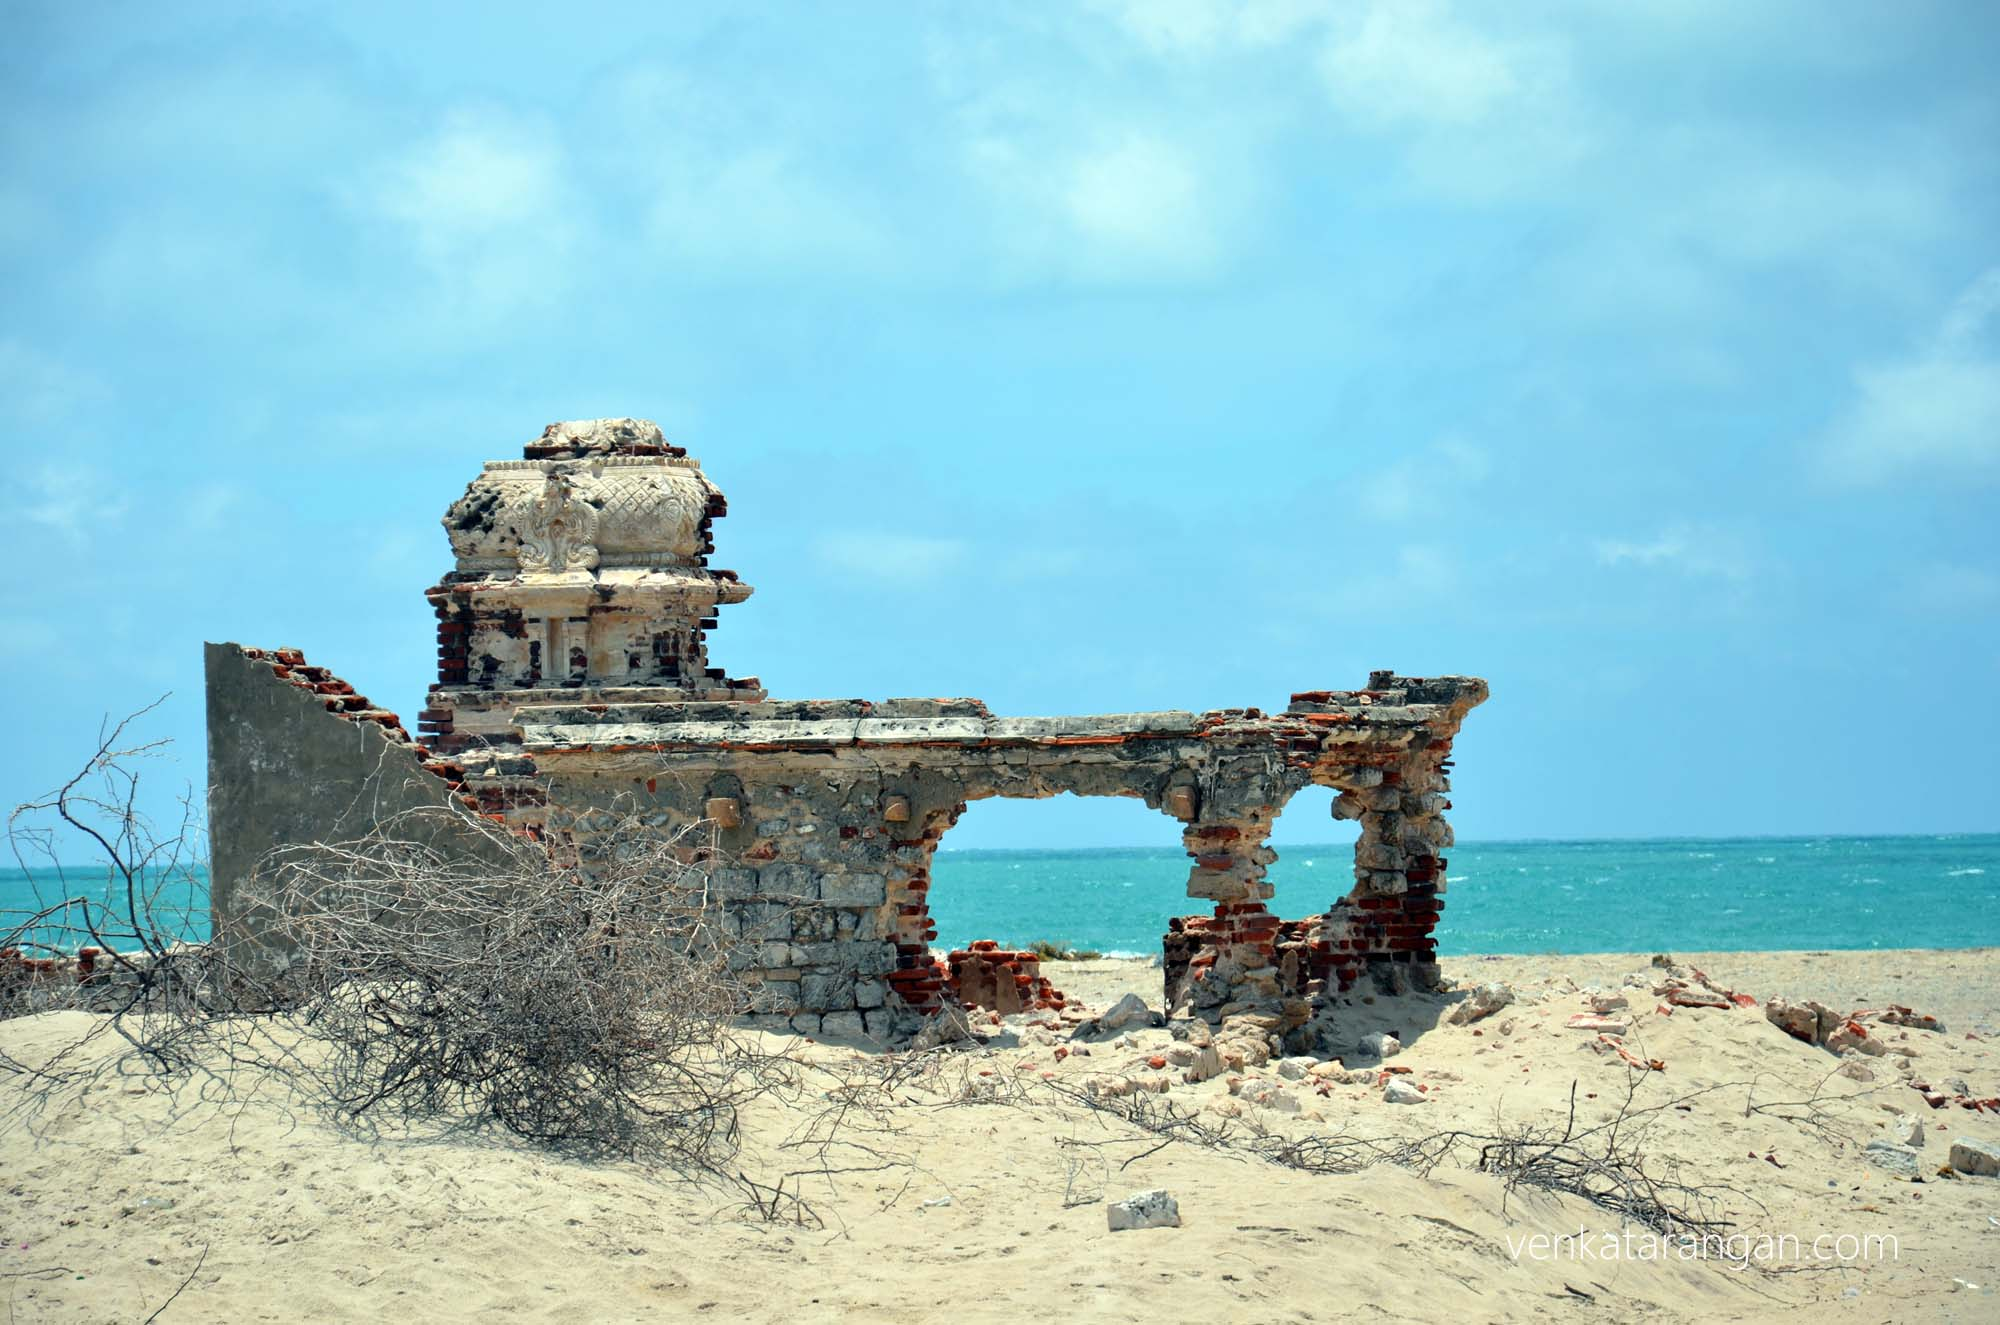 Ruins of the Hindu Temple, standing next to the Chapel - Dhanushkodi